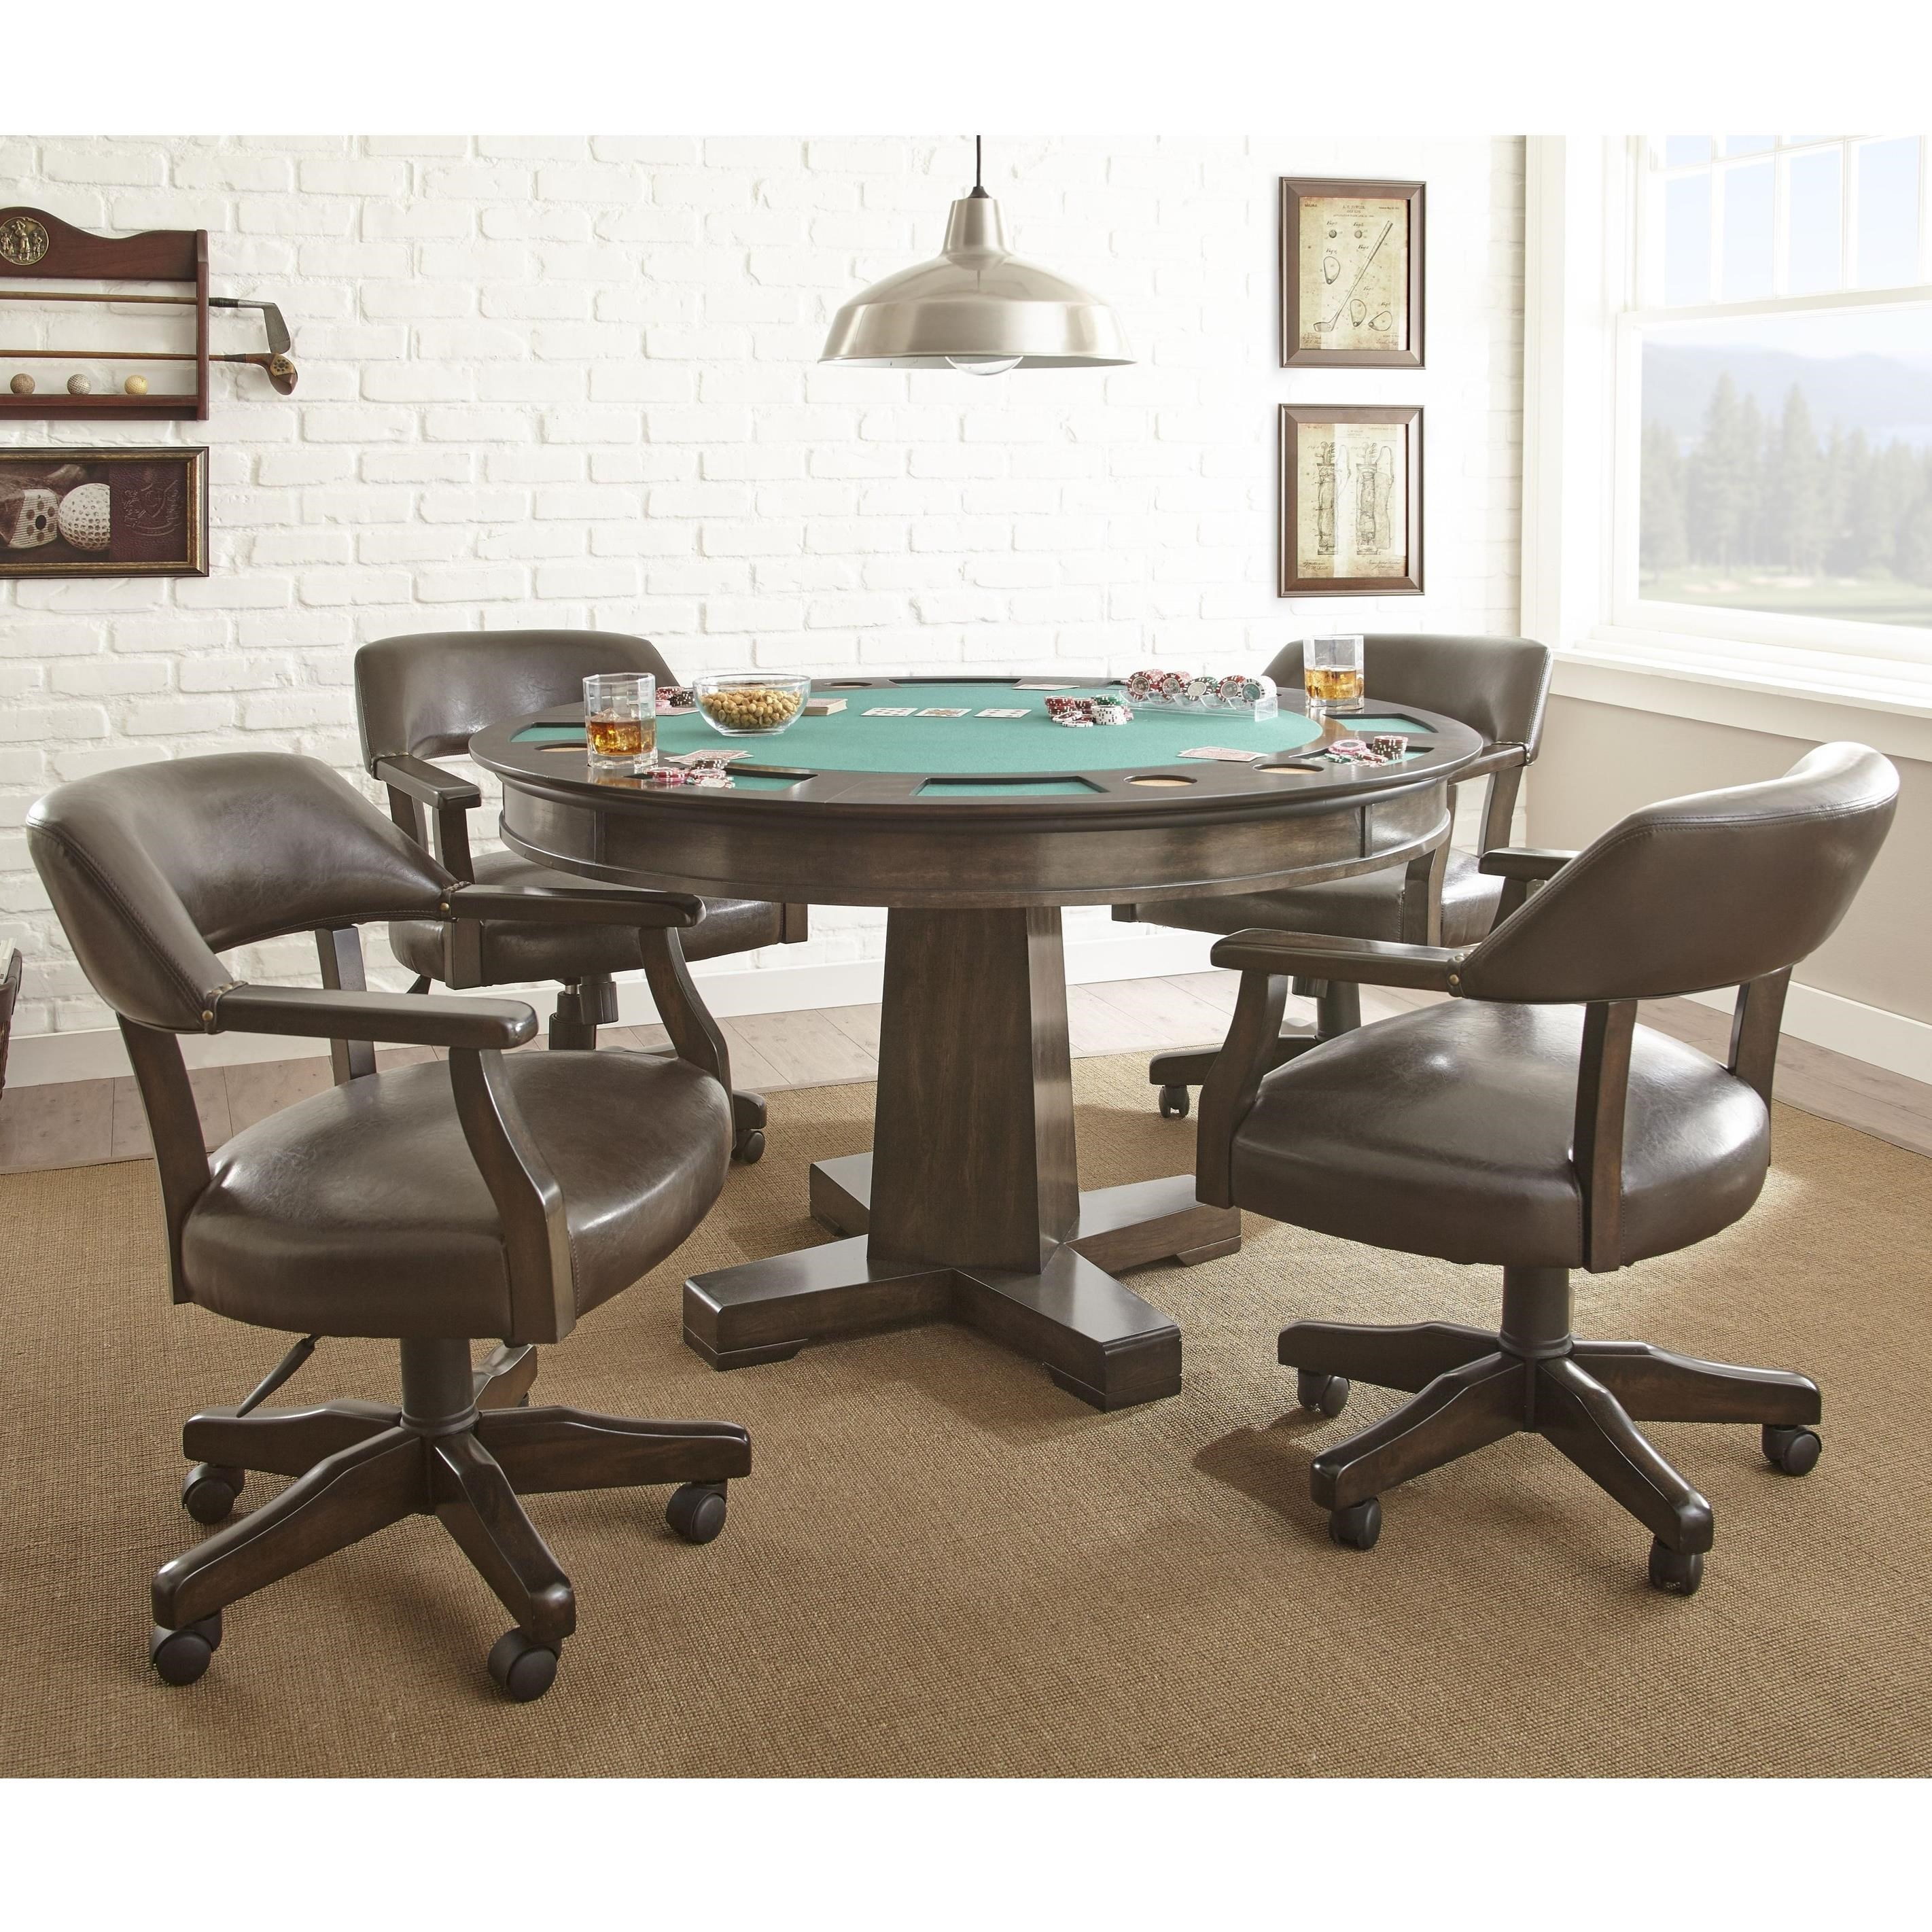 Game Table Set with 2-in-1 Table